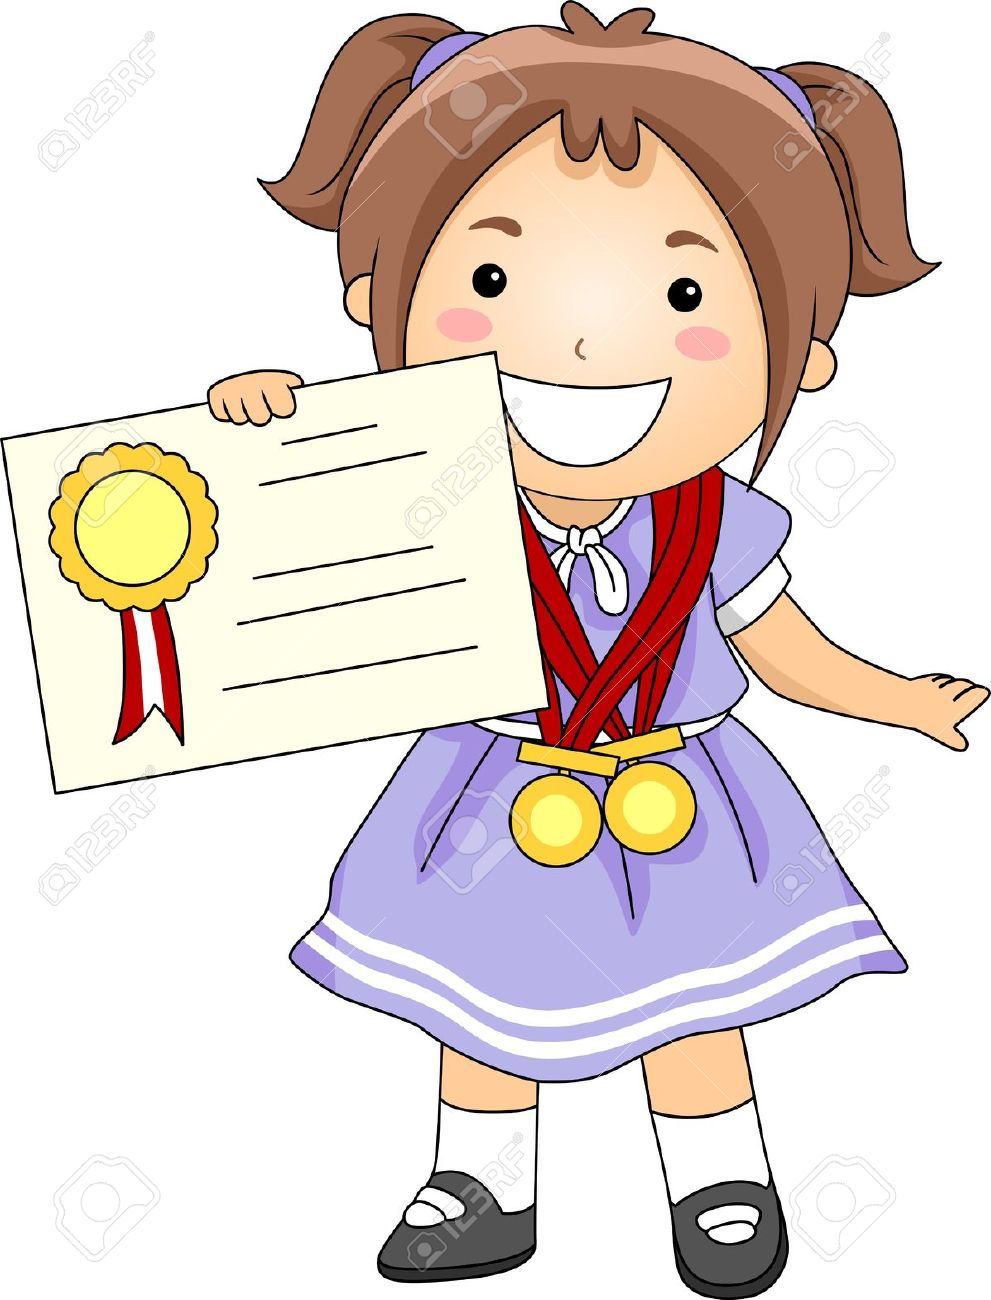 Student recognition clipart.